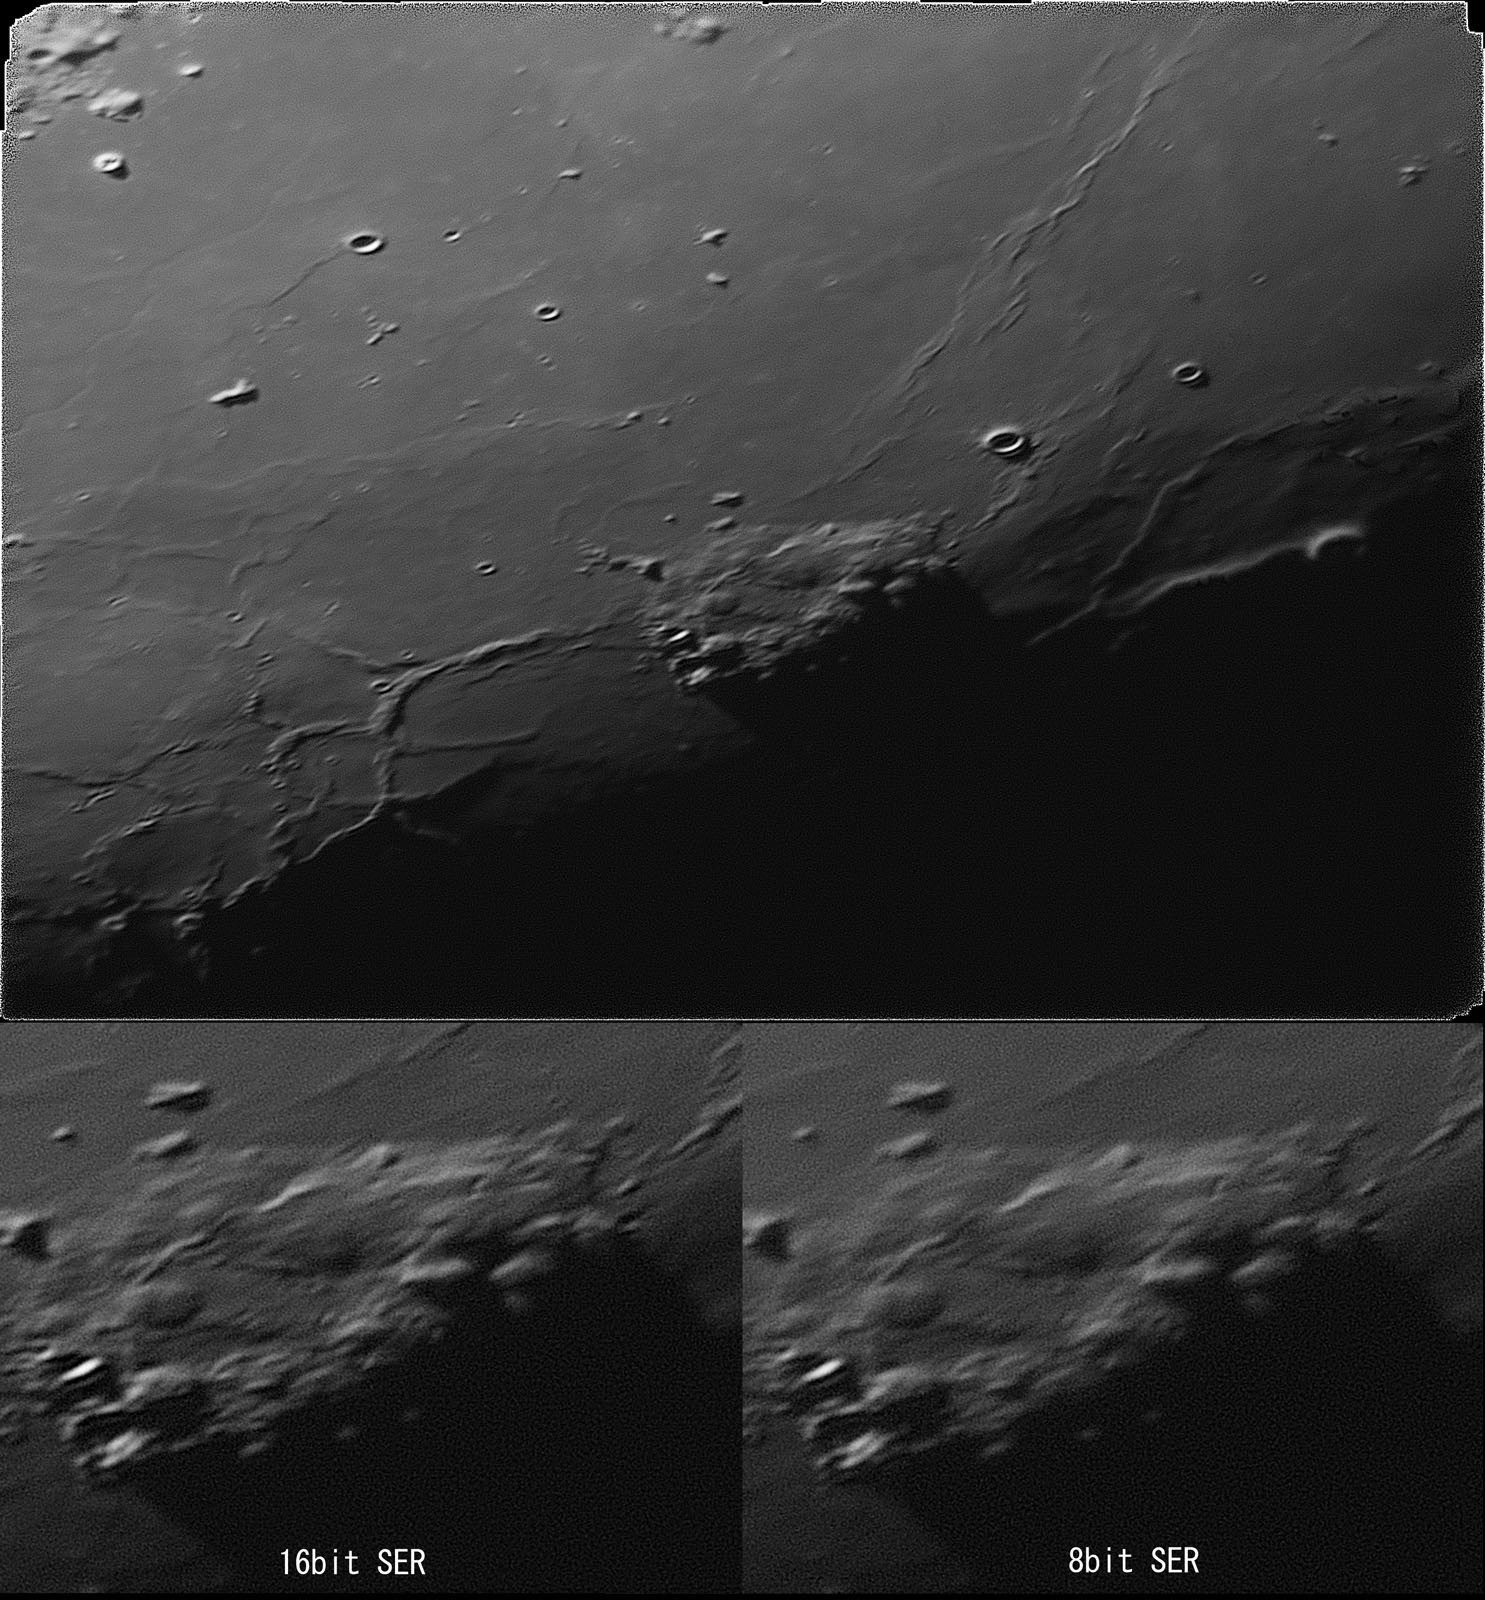 Moon201711018vs16bith1600